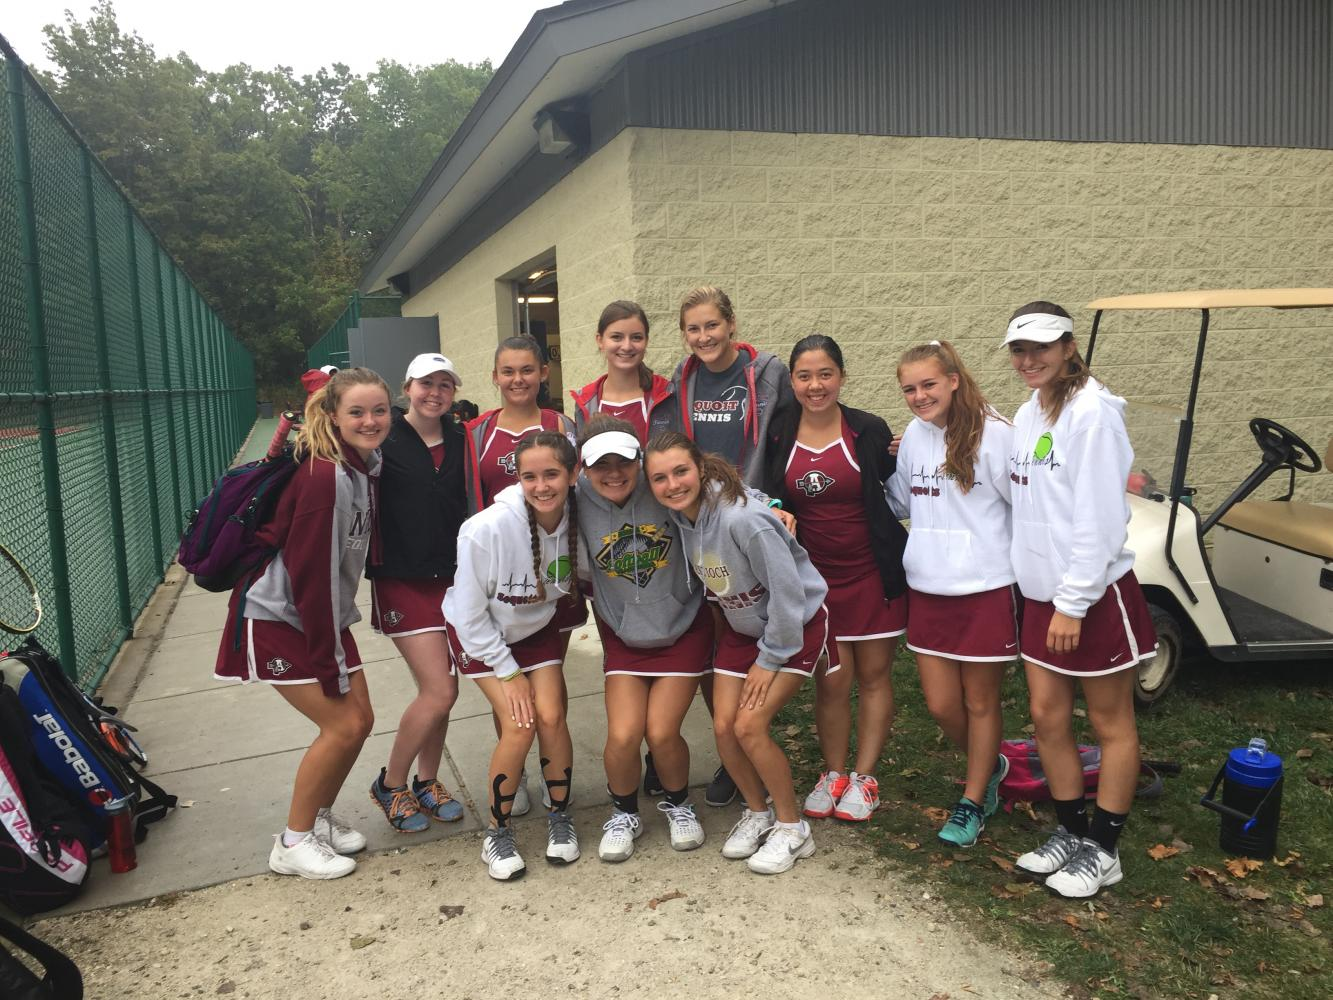 The girls varsity tennis team is excited to continue their matches on Saturday despite the oncoming rain.